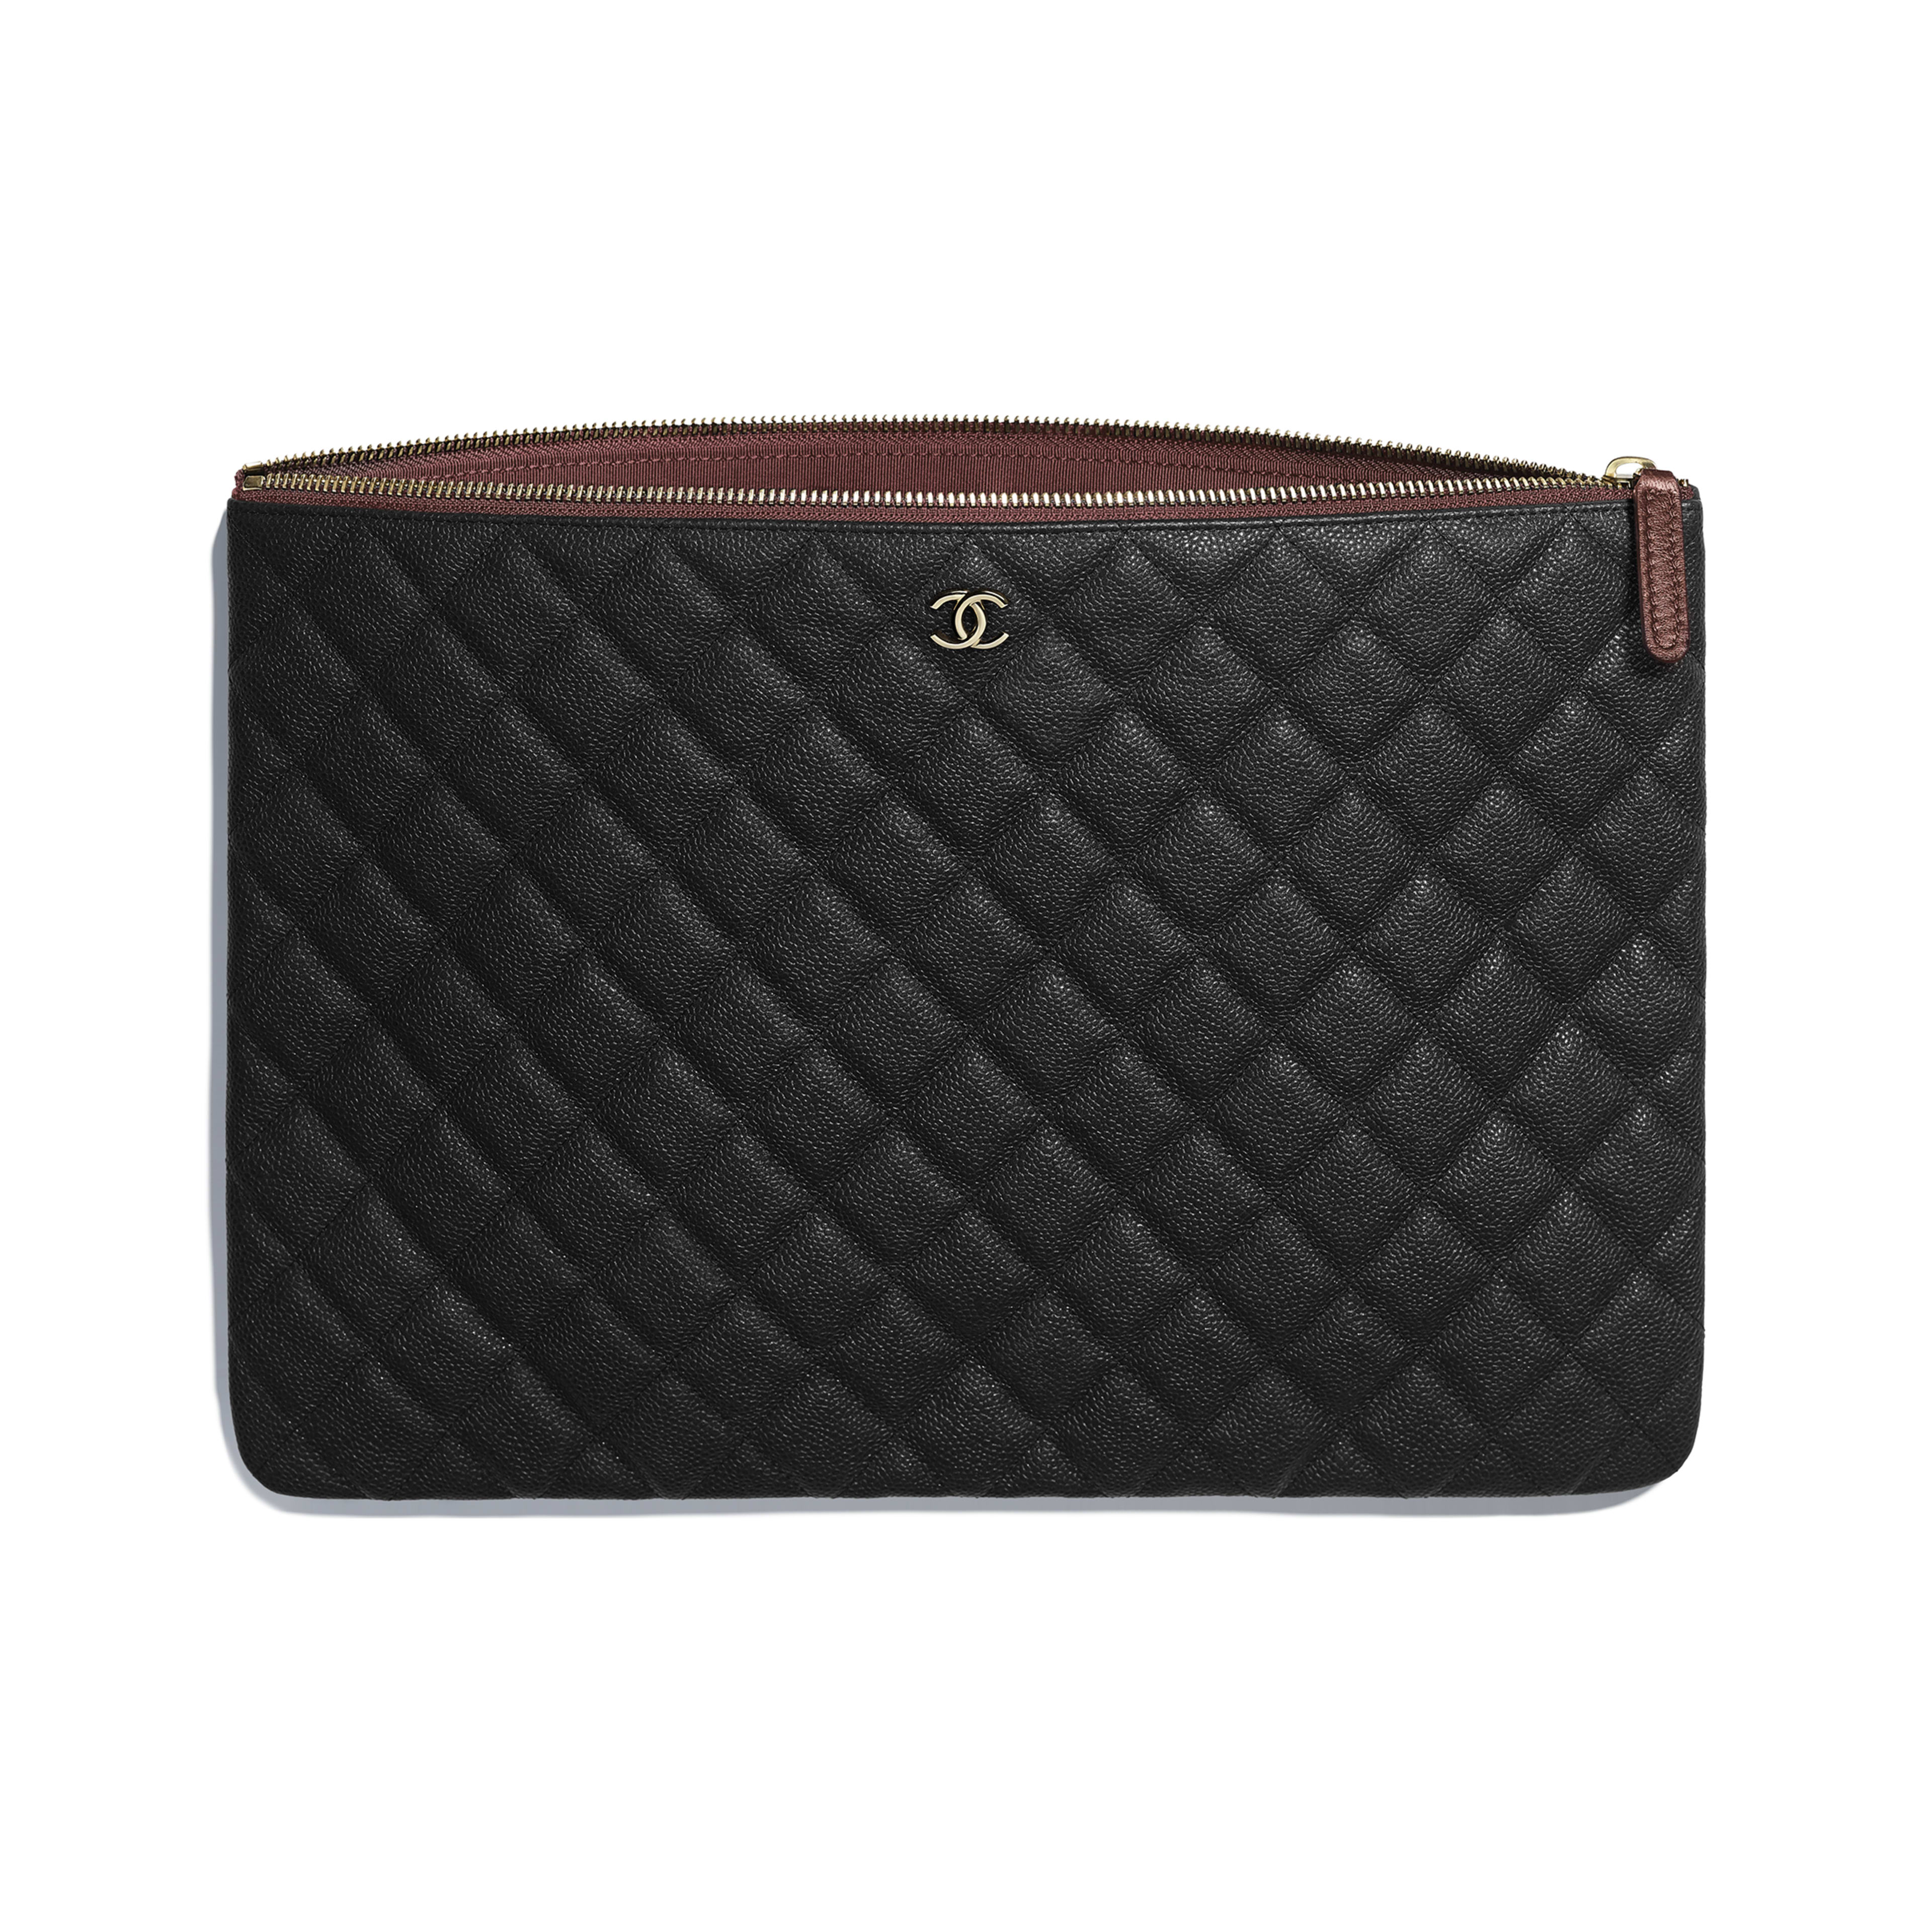 Classic Large Pouch - Black - Grained Calfskin & Gold-Tone Metal - Other view - see full sized version